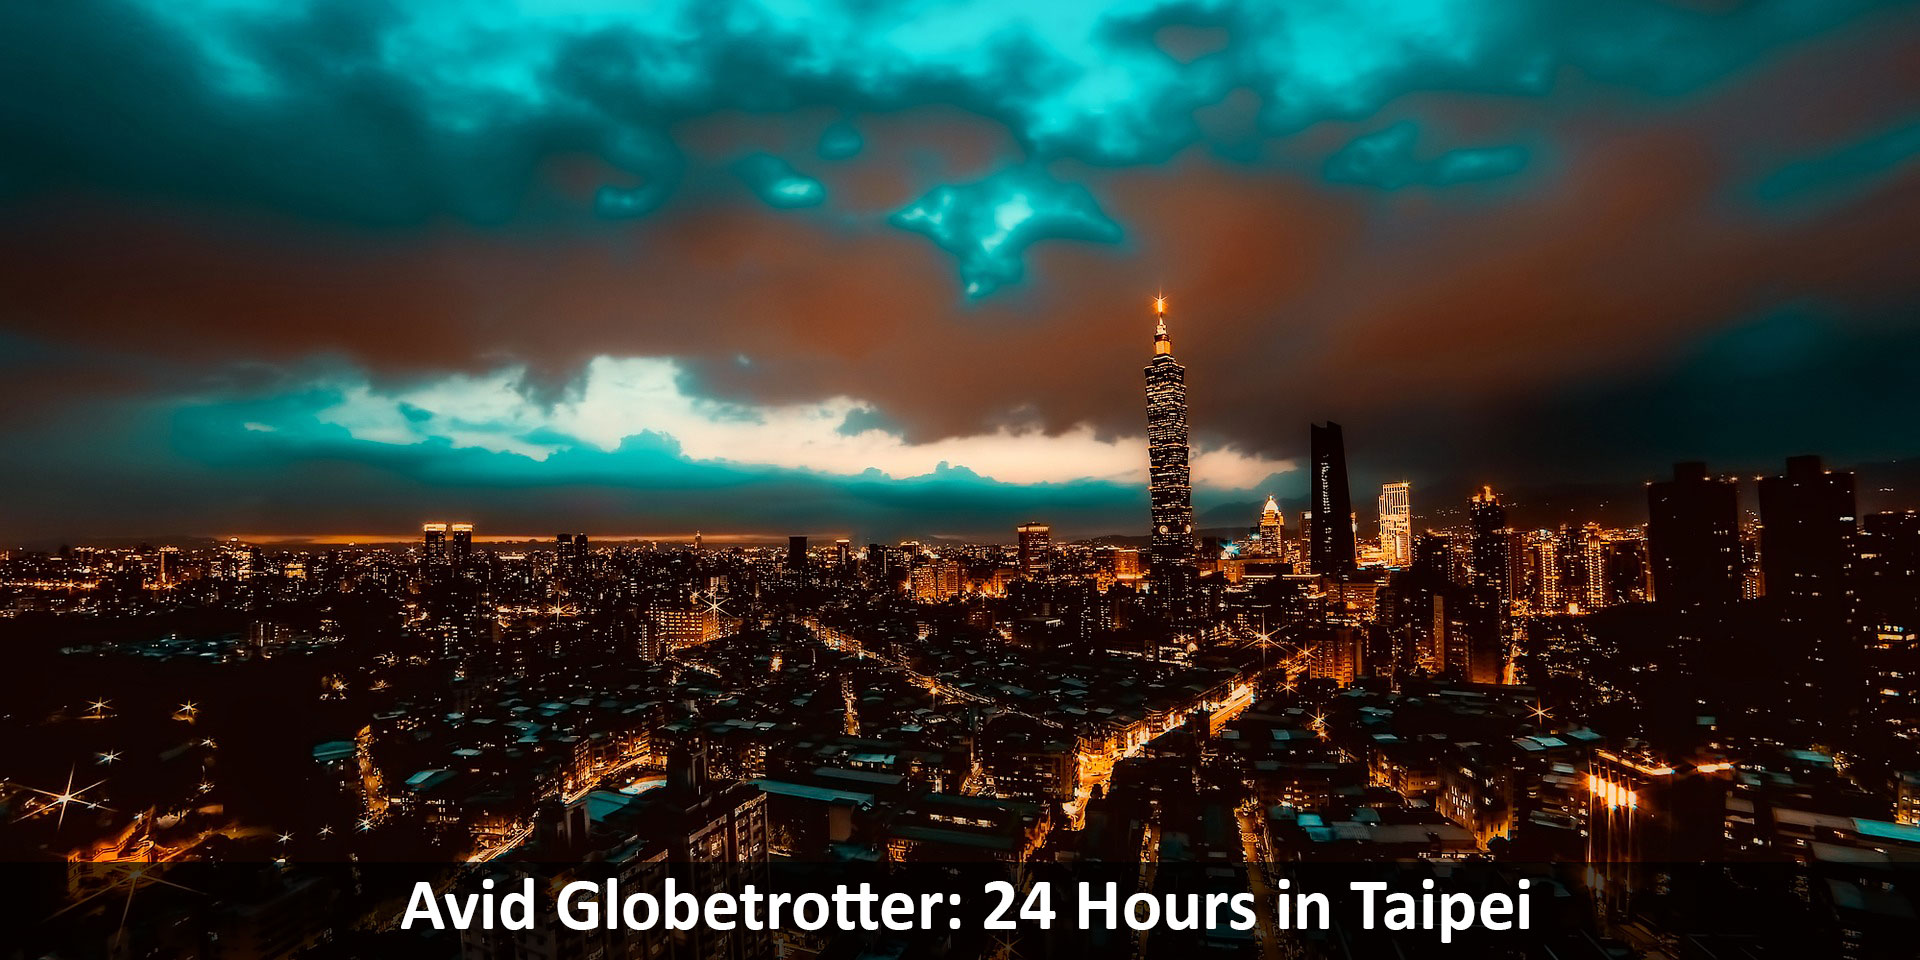 Avid Globetrotter: 24 Hours in Taipei